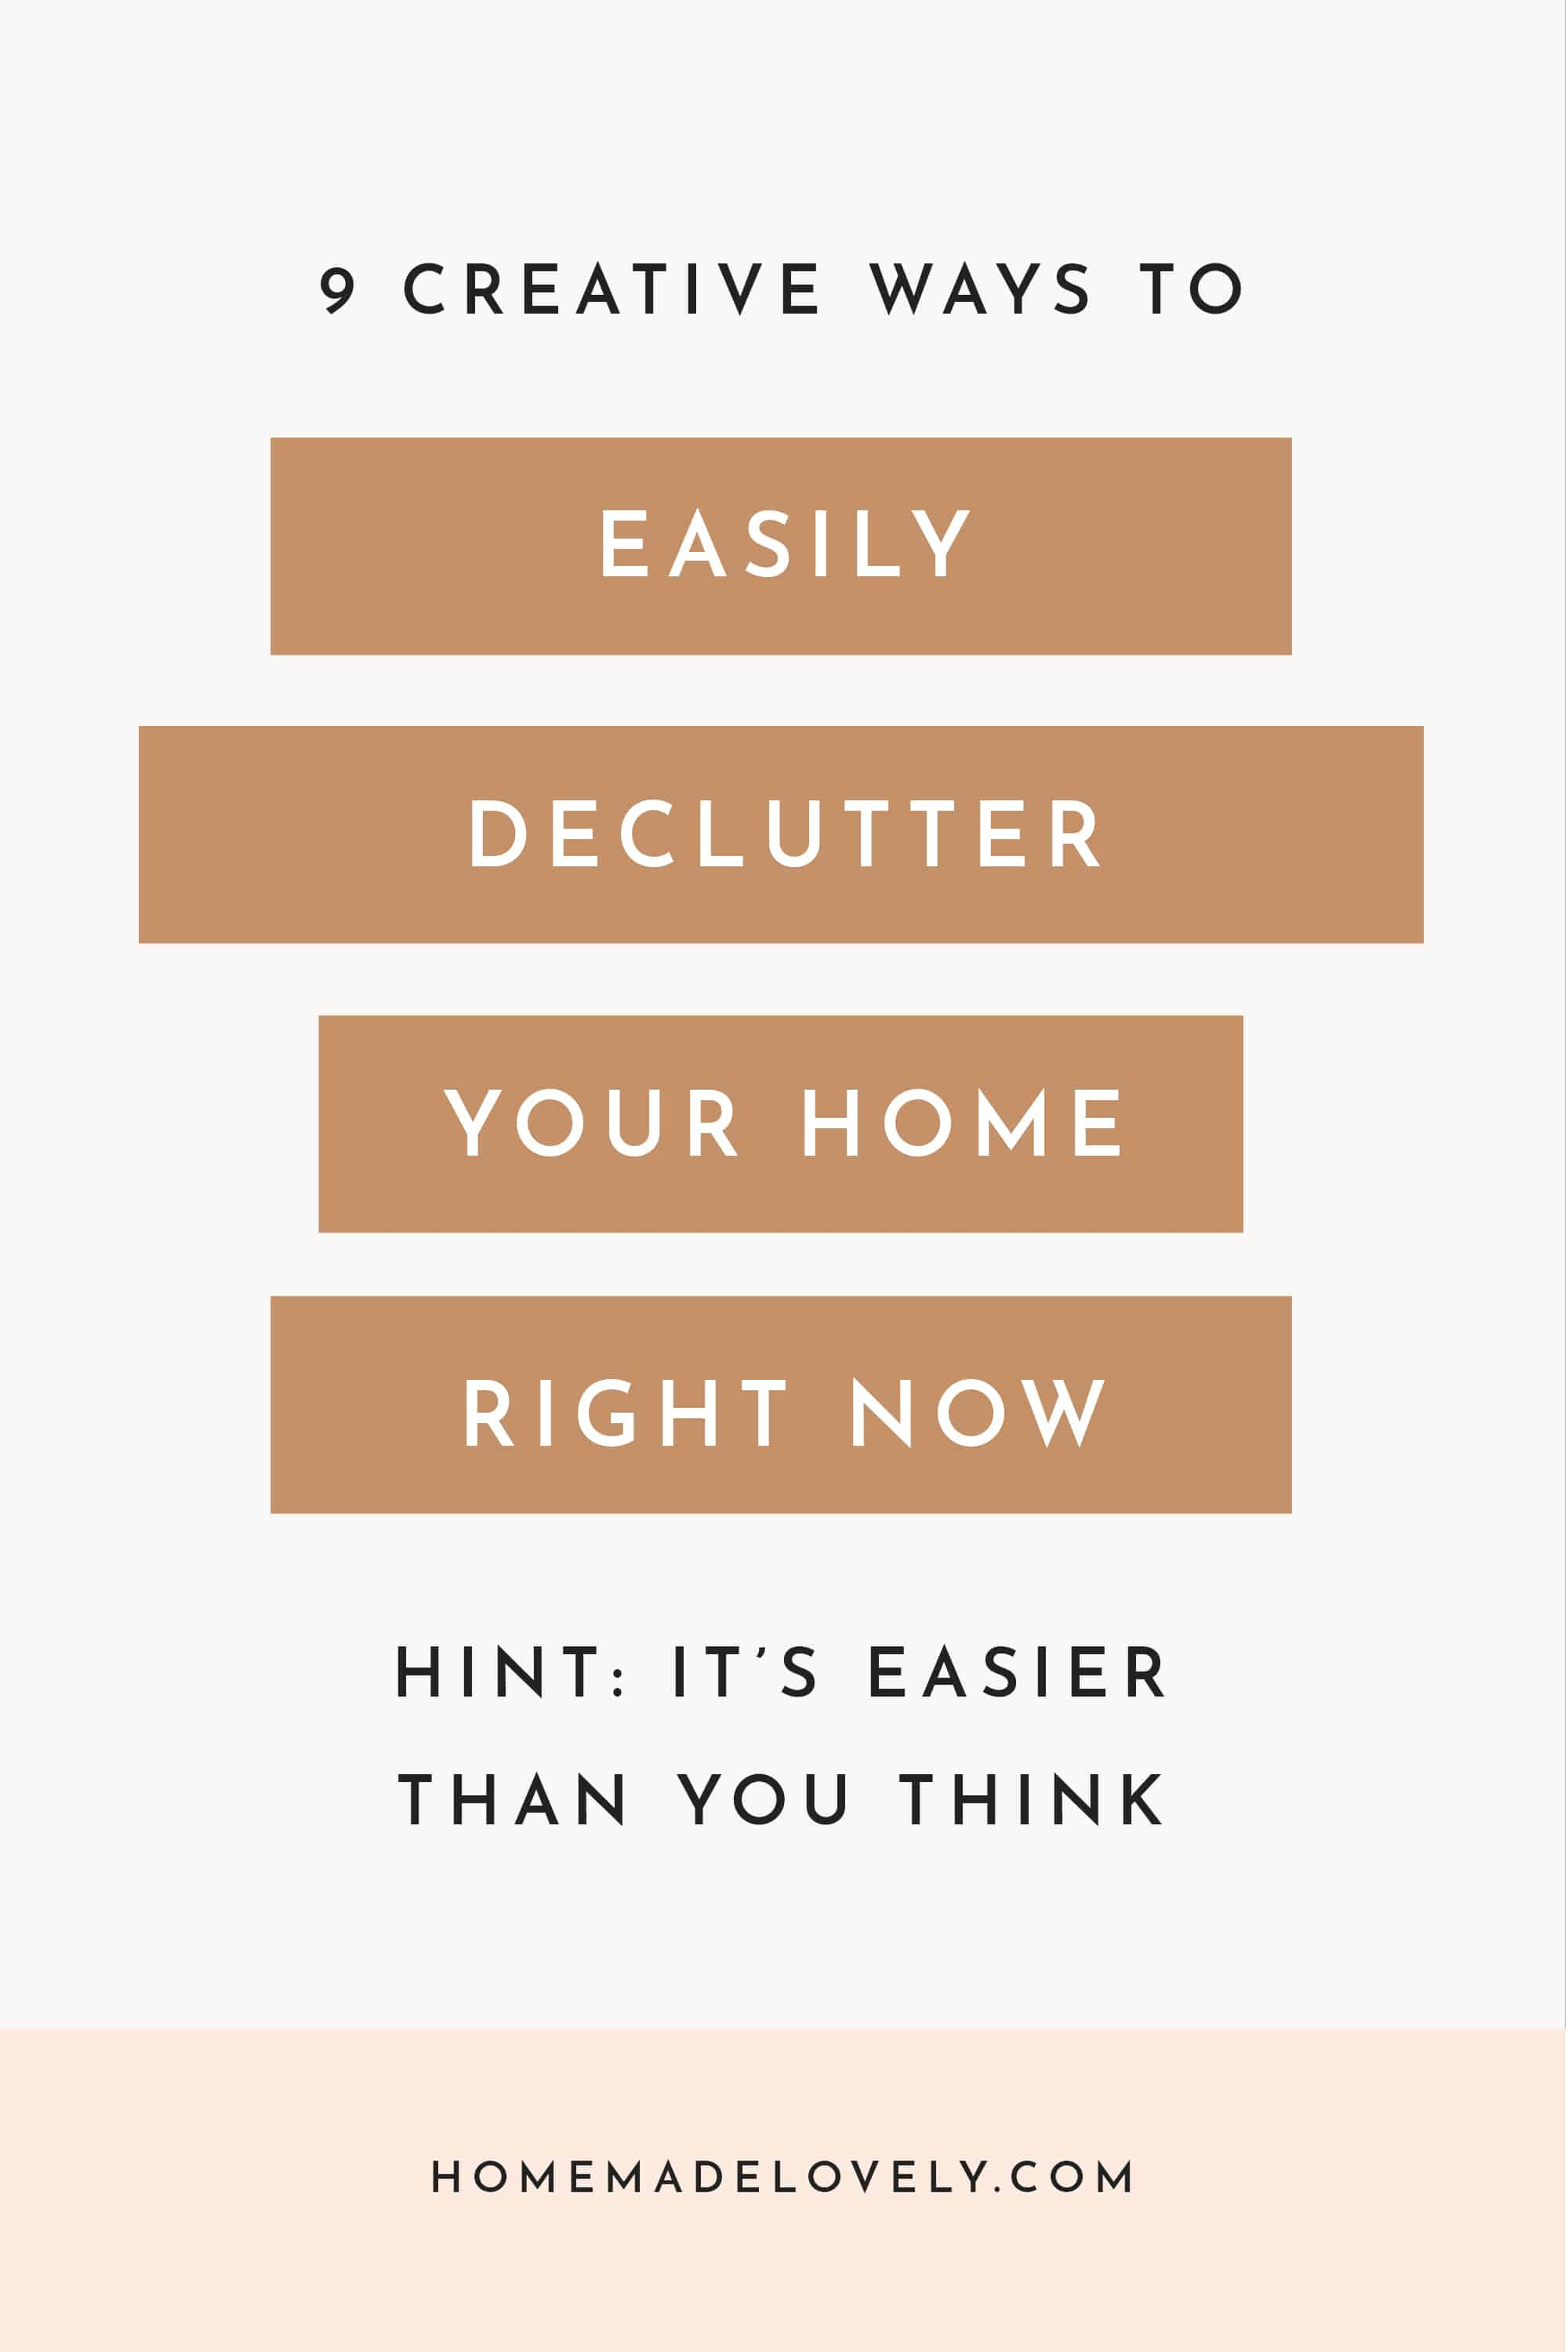 9 Creative Ways to Easily Declutter Your Home Right Now